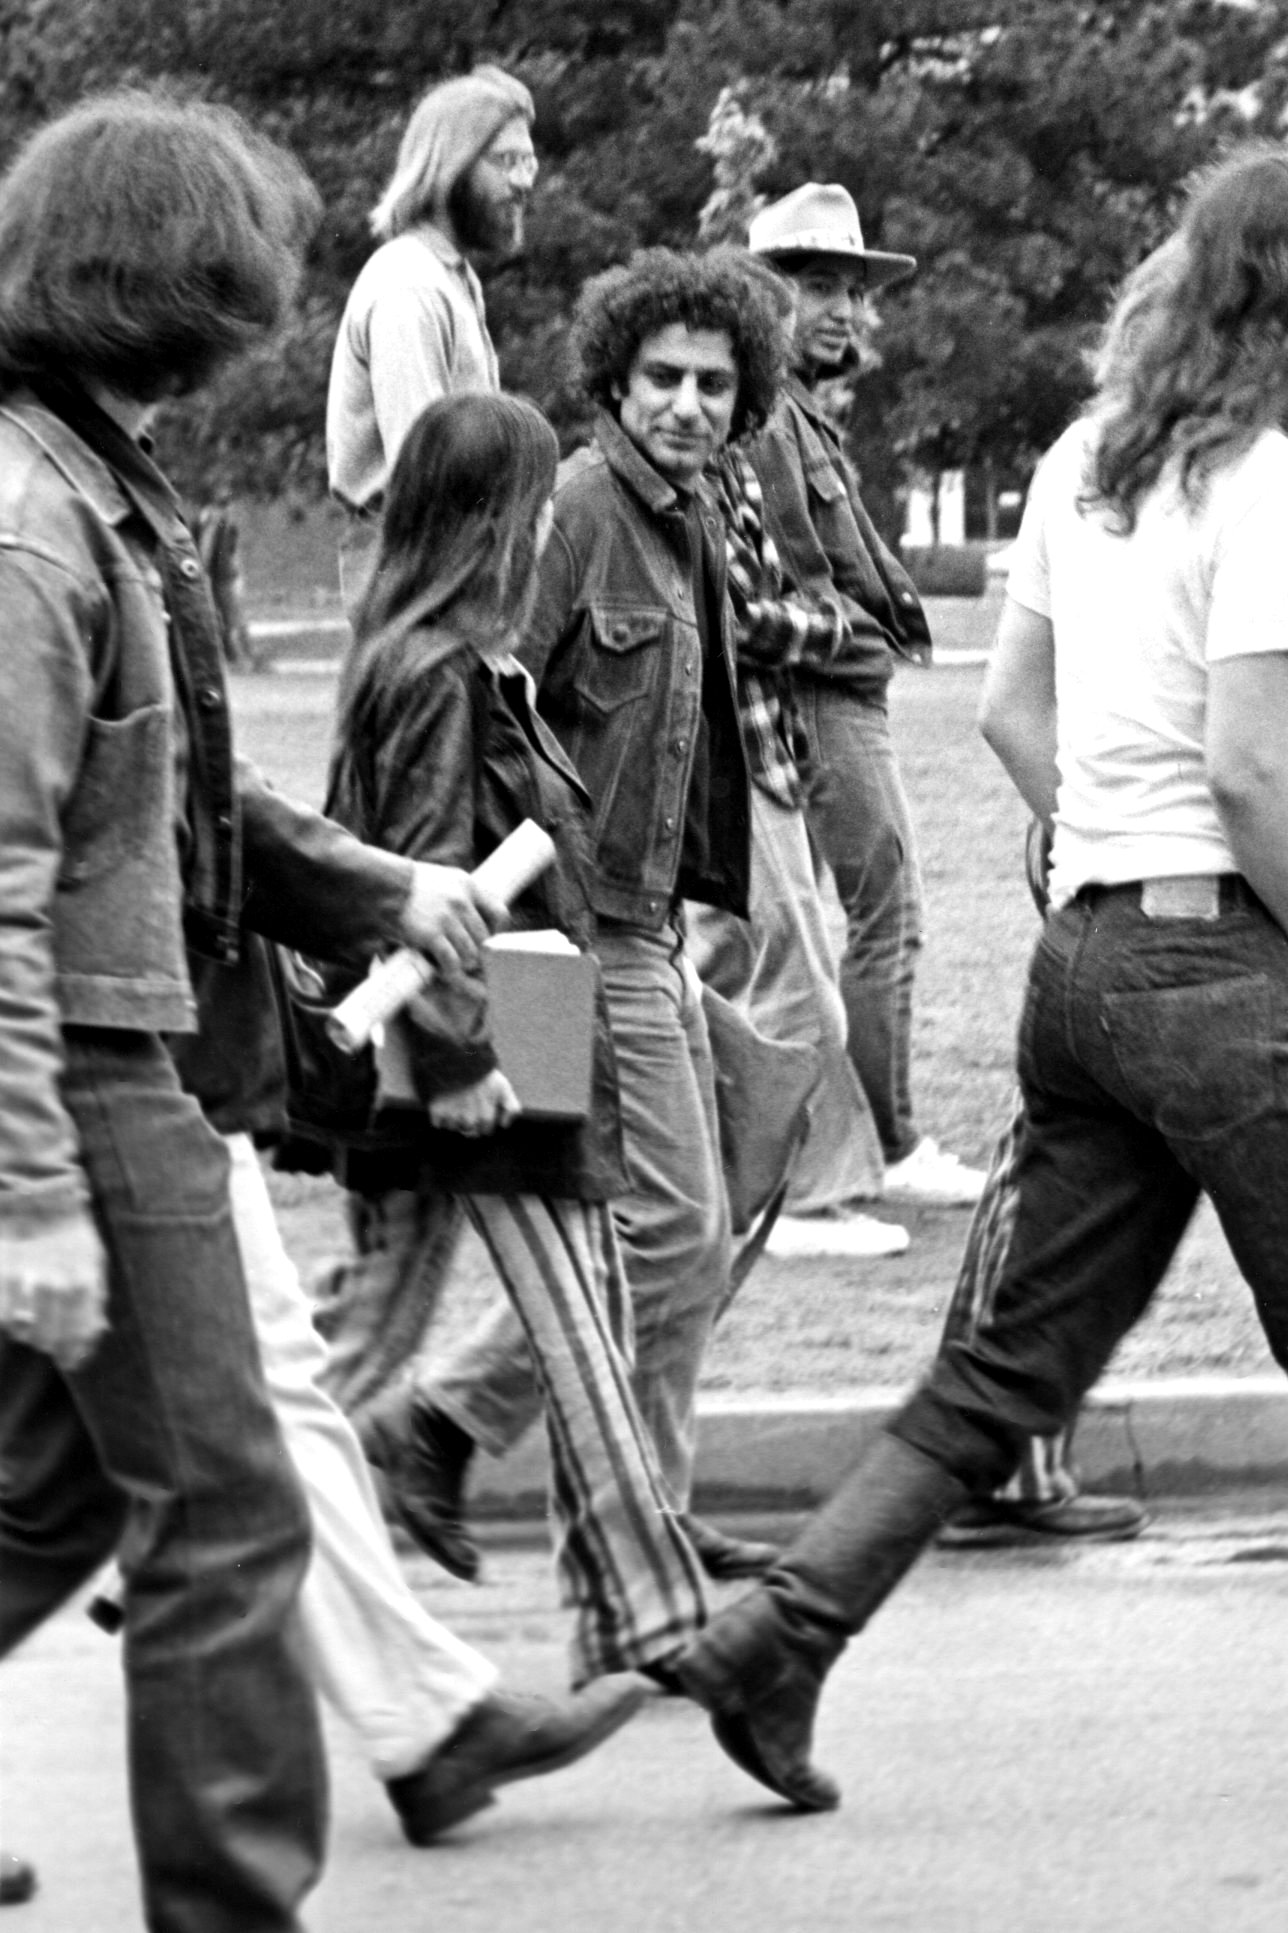 Depiction of Abbie Hoffman